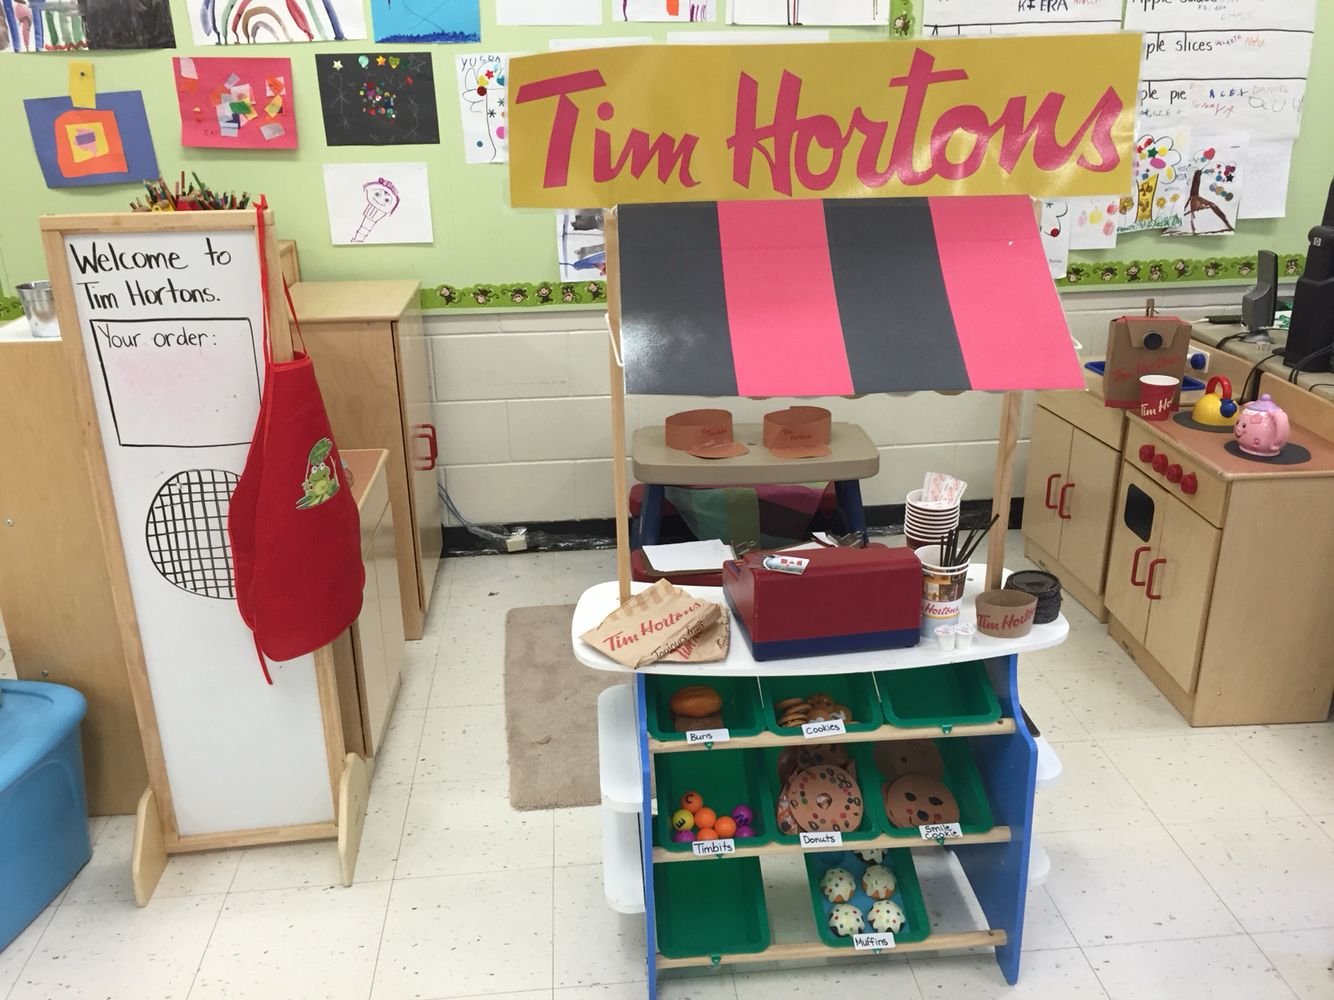 Our Tim Hortons